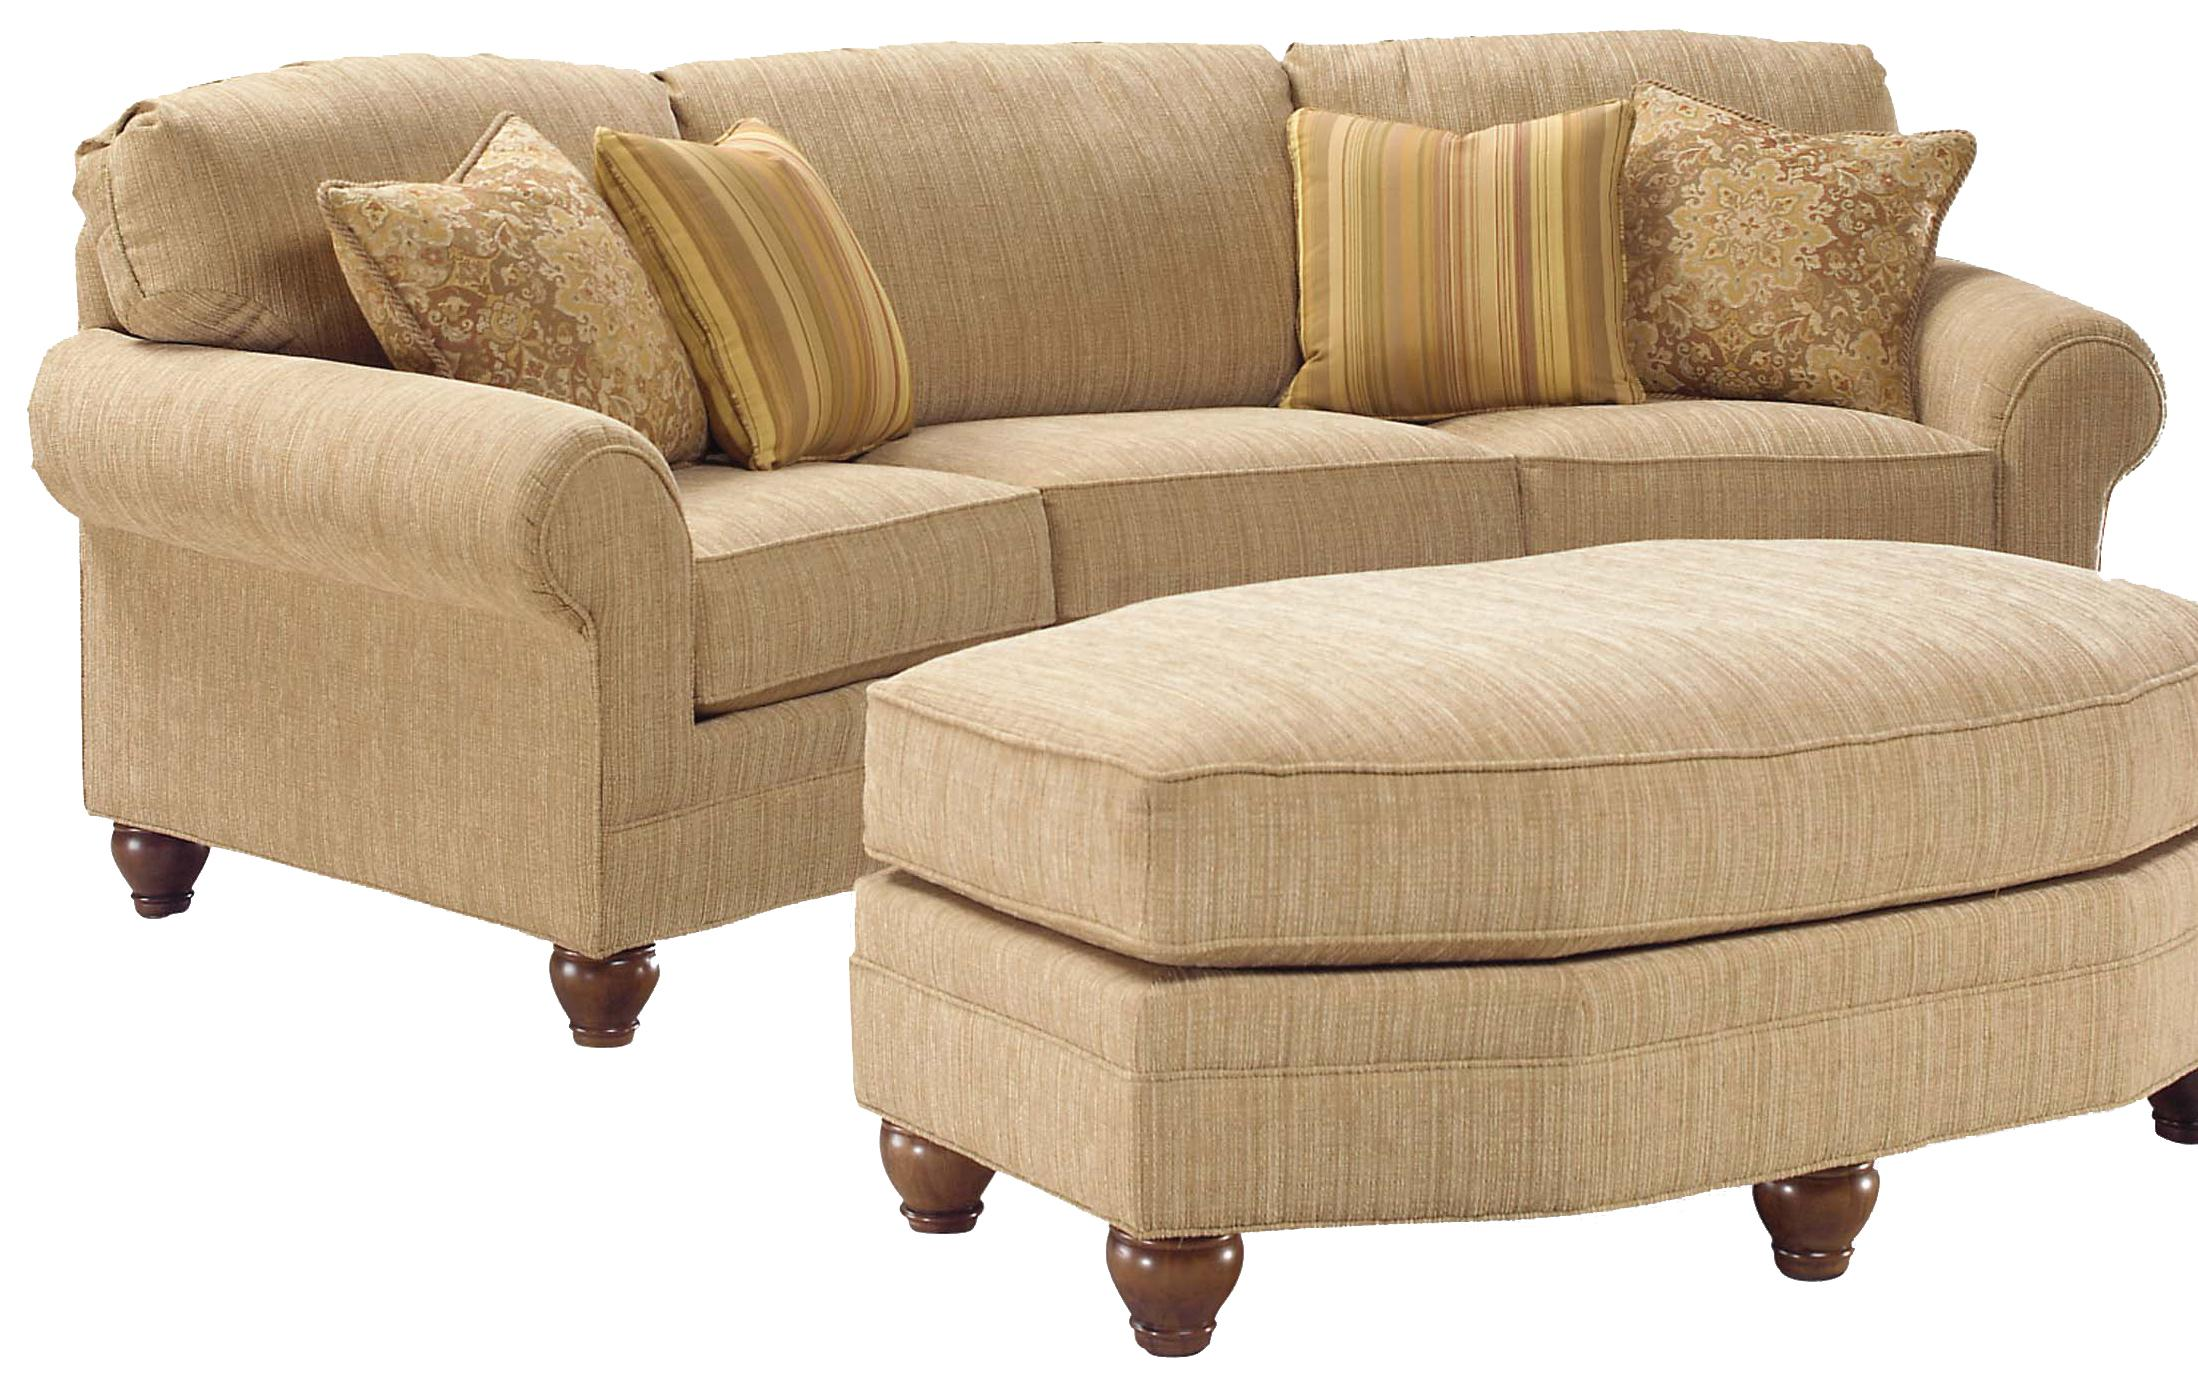 Curved Sofa 3768 Curved Arch Sofa By Fairfield At Olinde S Furniture